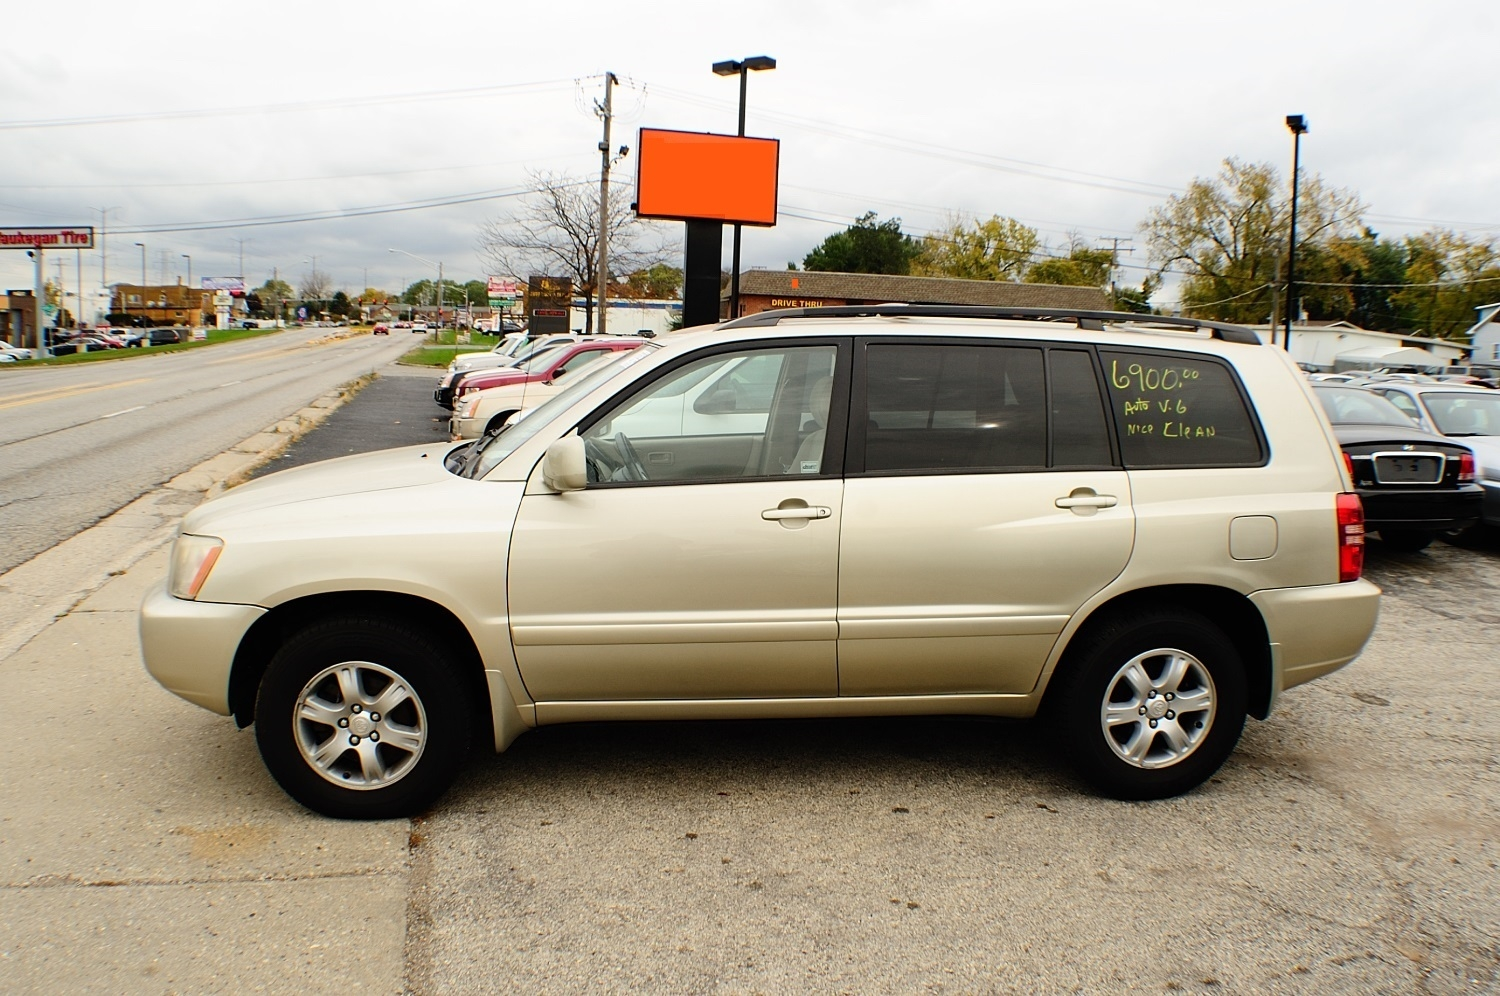 2003 Toyota Highlander Sand 4x4 Used car SUV sale Antioch Zion Waukegan Lake County Illinois